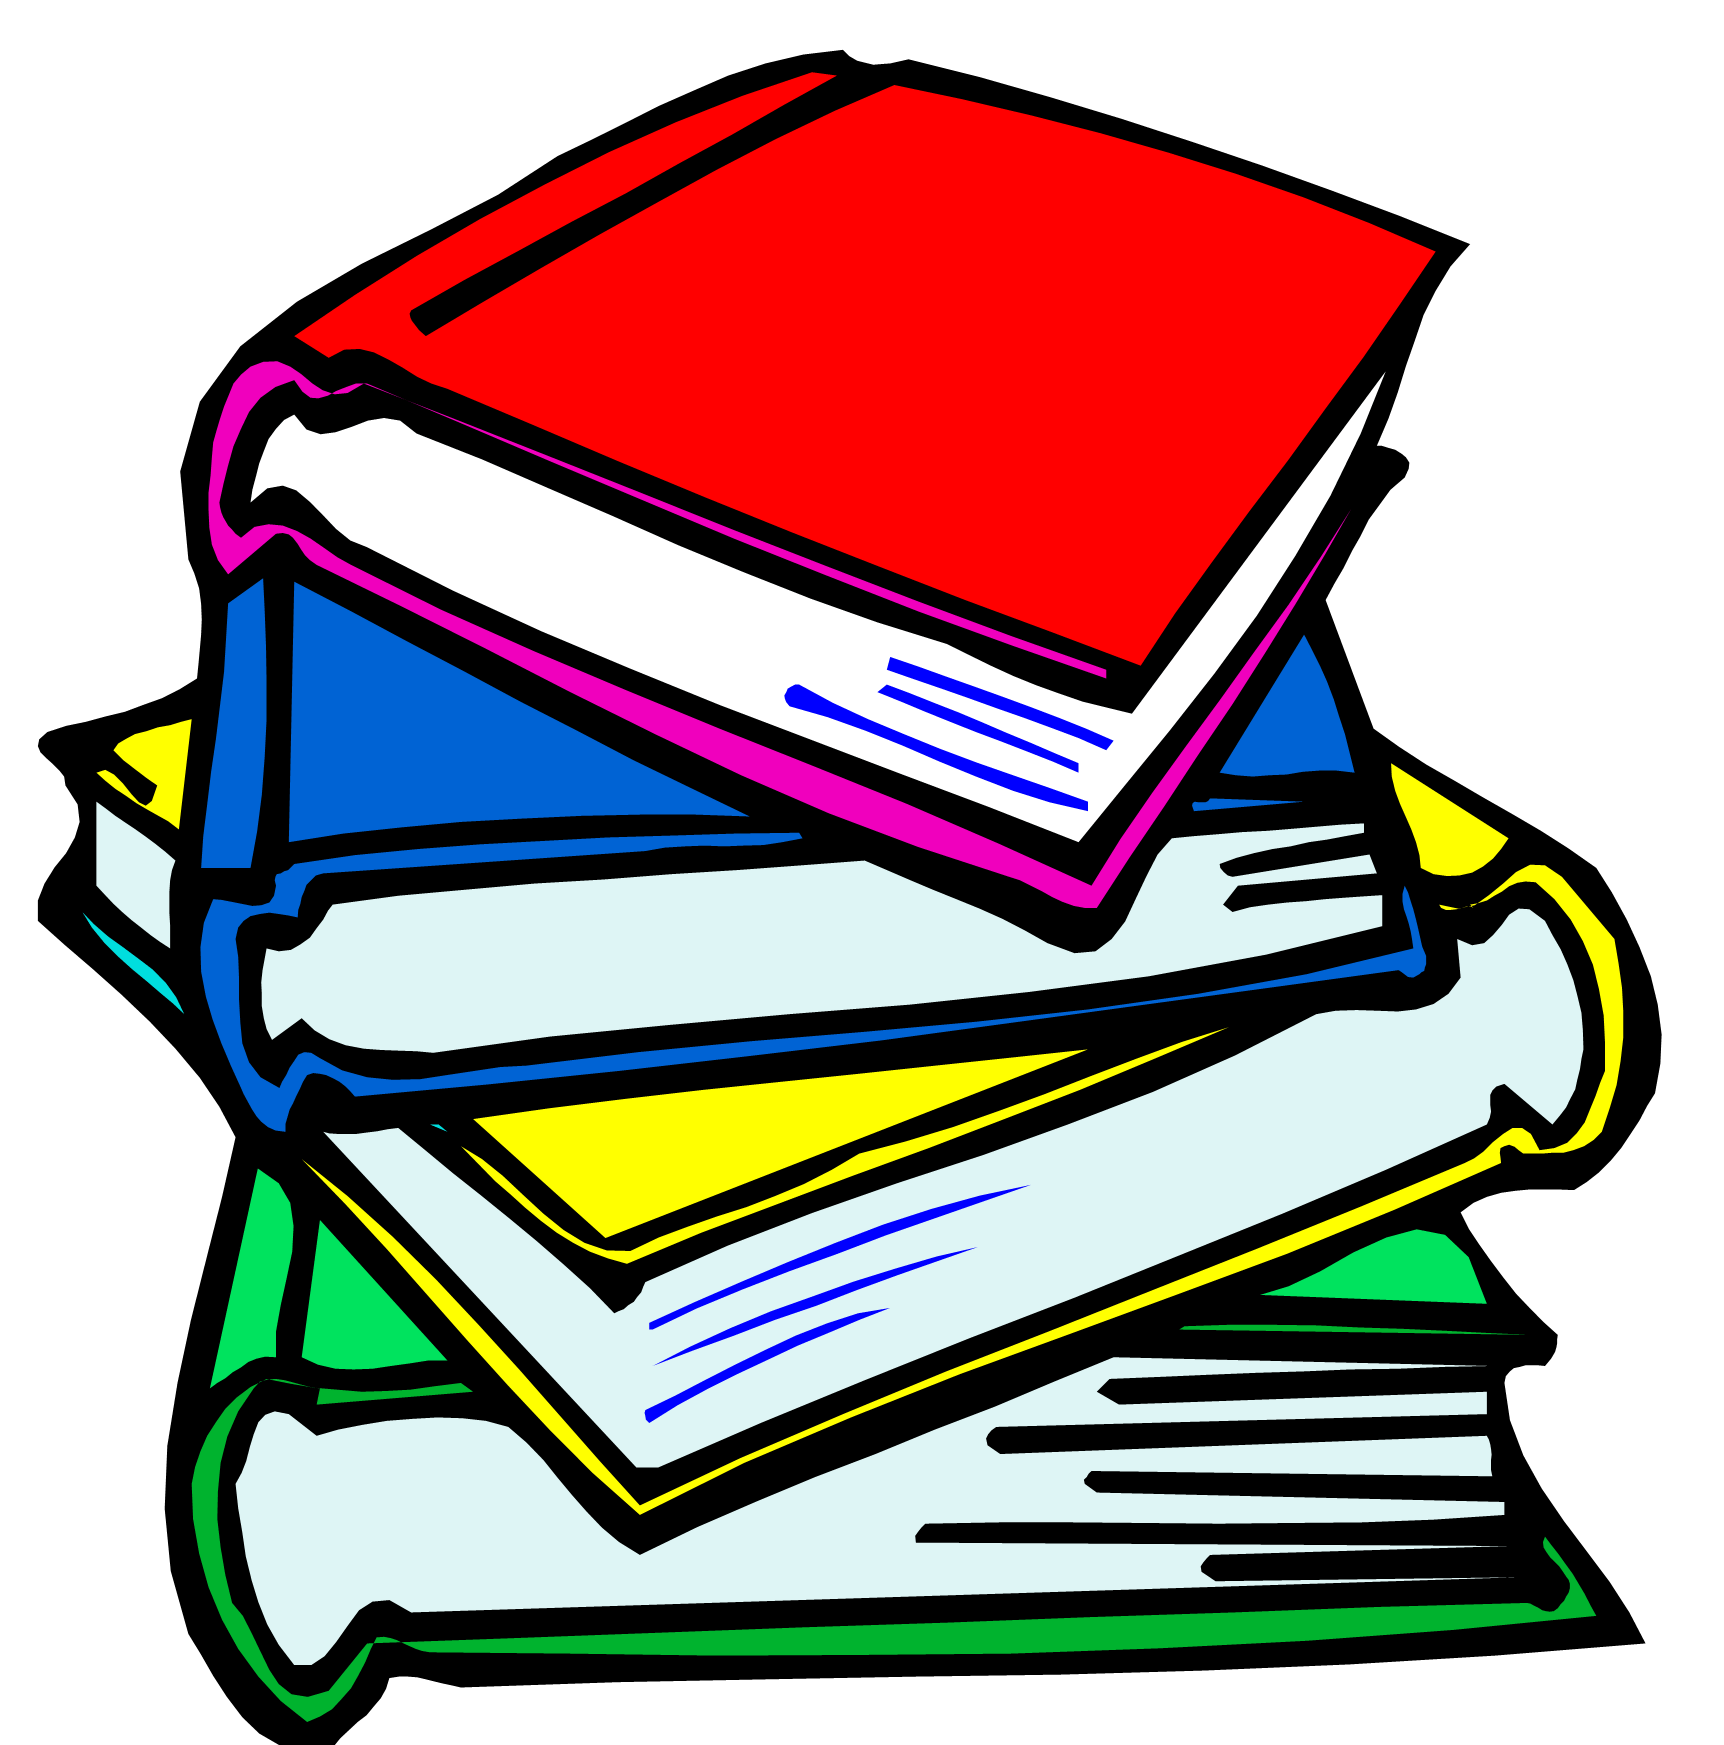 hight resolution of school book pictures free download clip art free clip art on